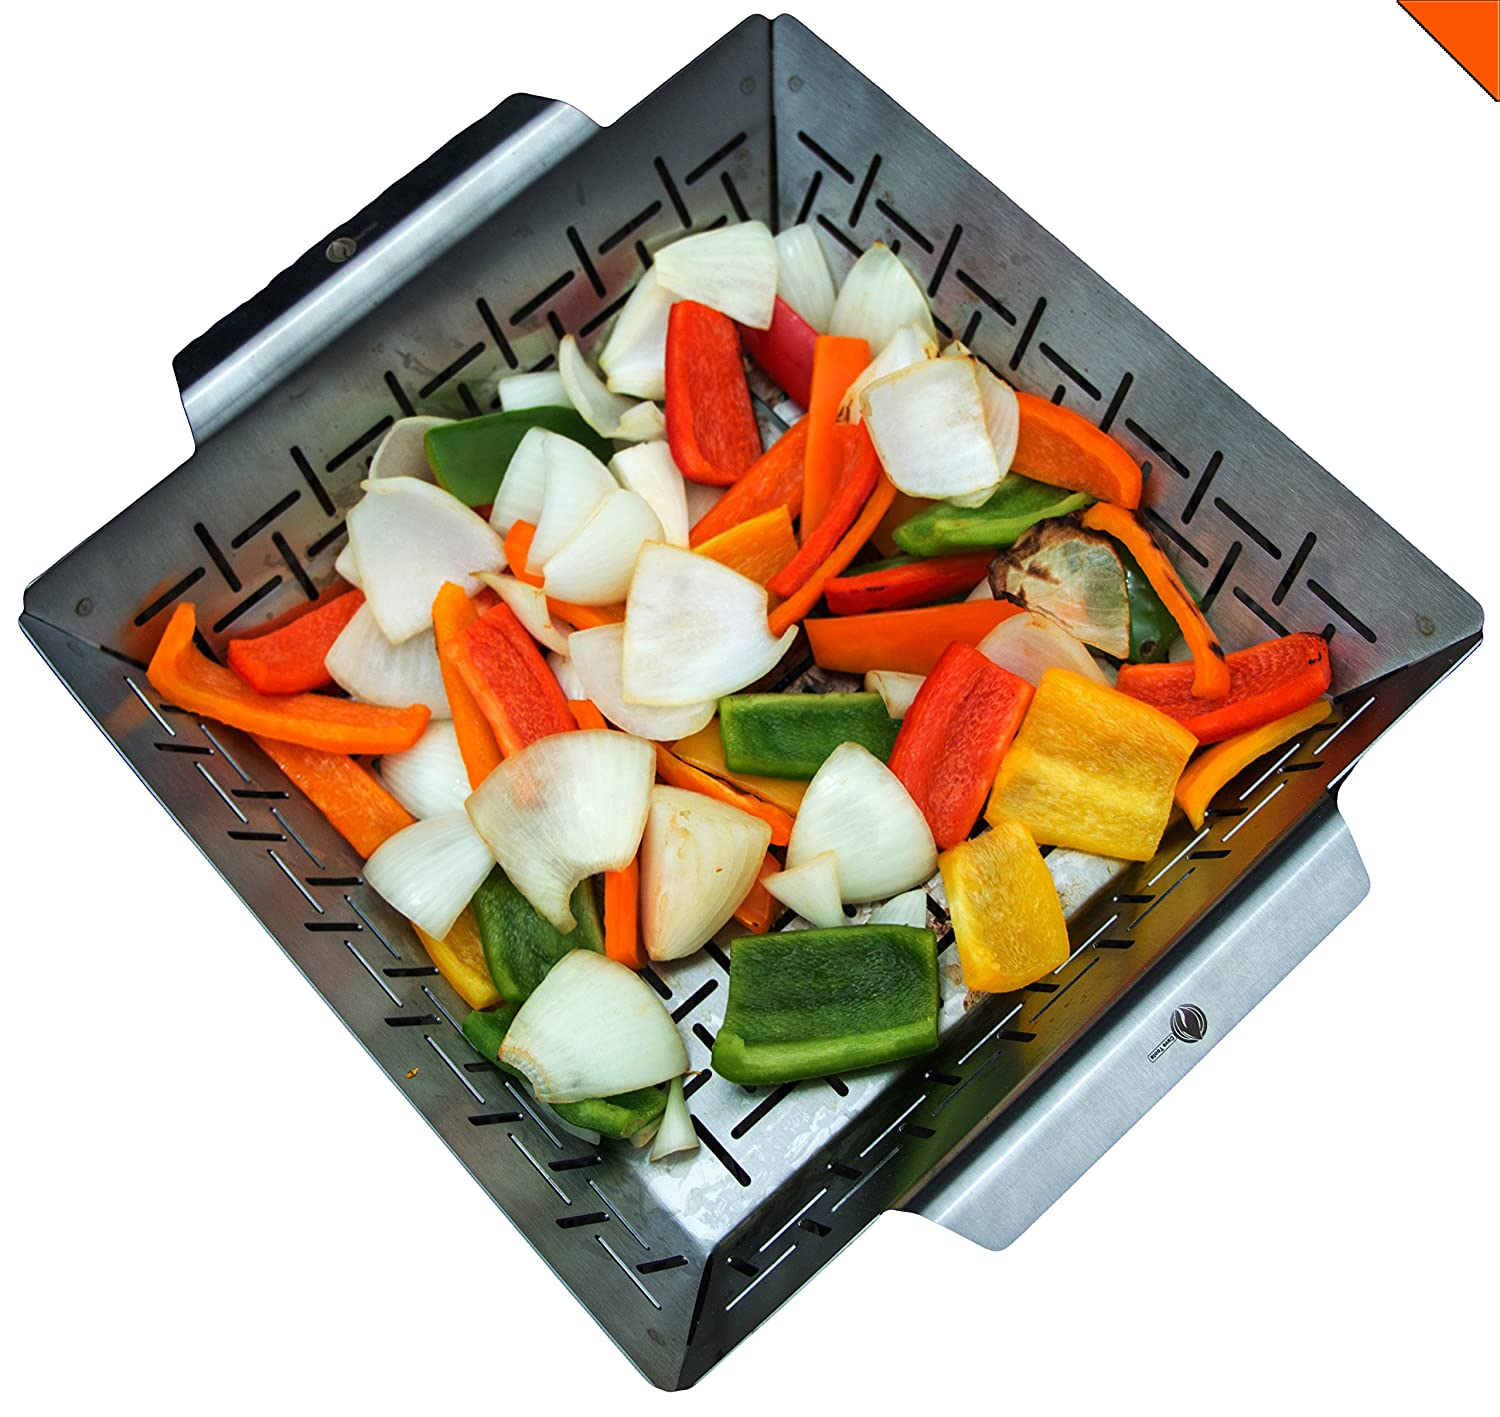 Vegetable Grill Basket - DISHWASHER SAFE STAINLESS STEEL - Large Non Stick BBQ Grid Pan For Veggies Meat Fish Shrimp & Fruit - Best Barbecue Wok Topper Accessories Gift for Dad - Cave Tools VEGETABLE BASKET